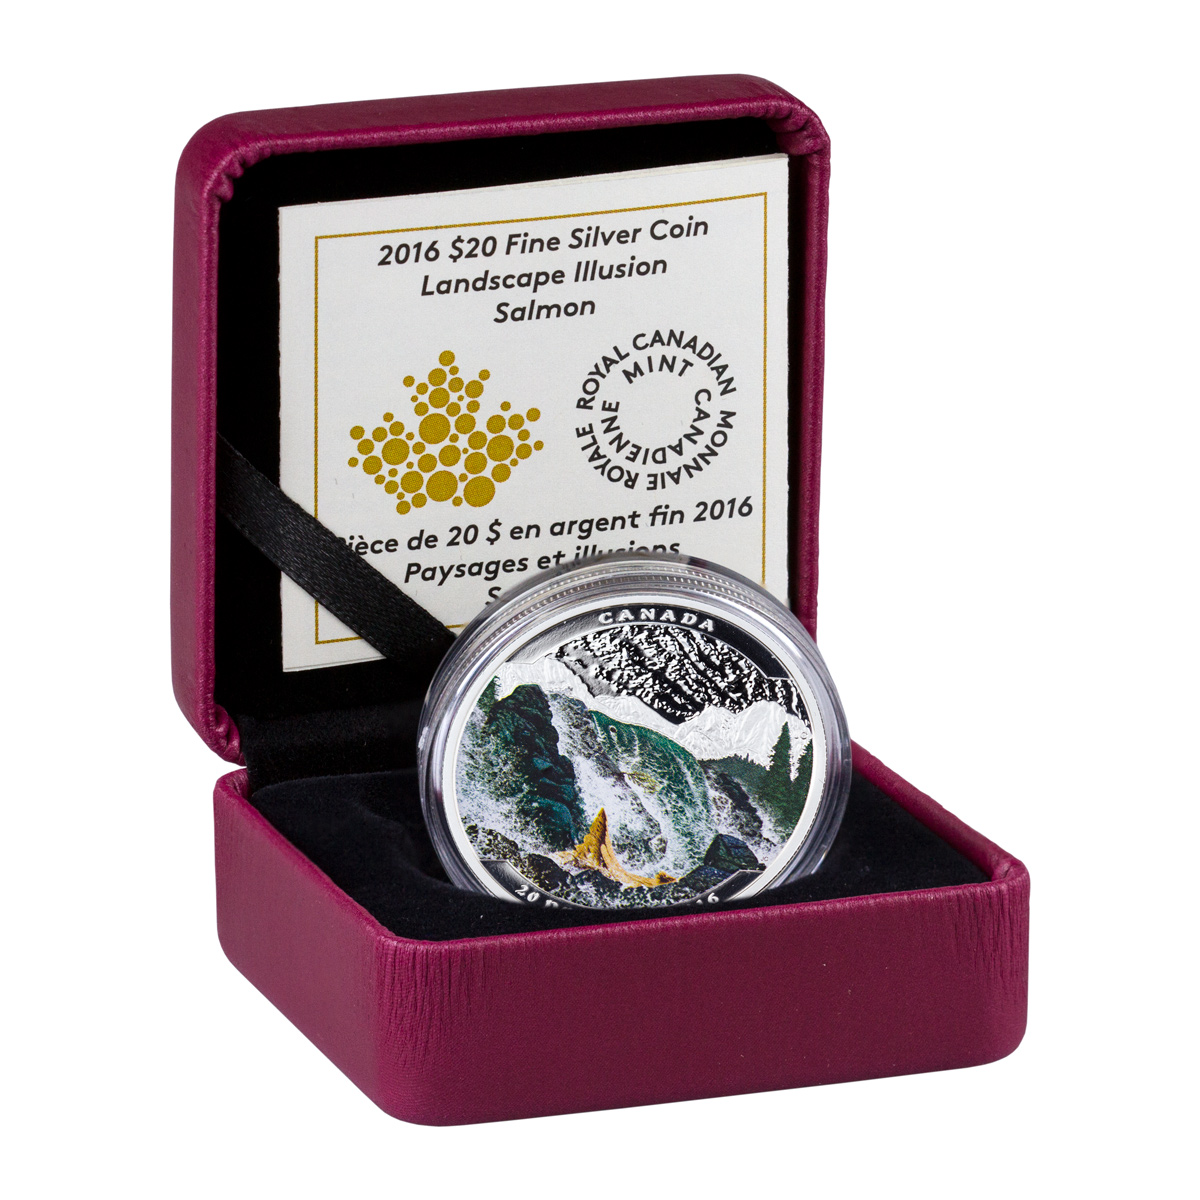 2016 Canada $20 1 oz. Colorized Proof Silver Landscape Illusion - Salmon - GEM Proof (Original Mint Packaging)